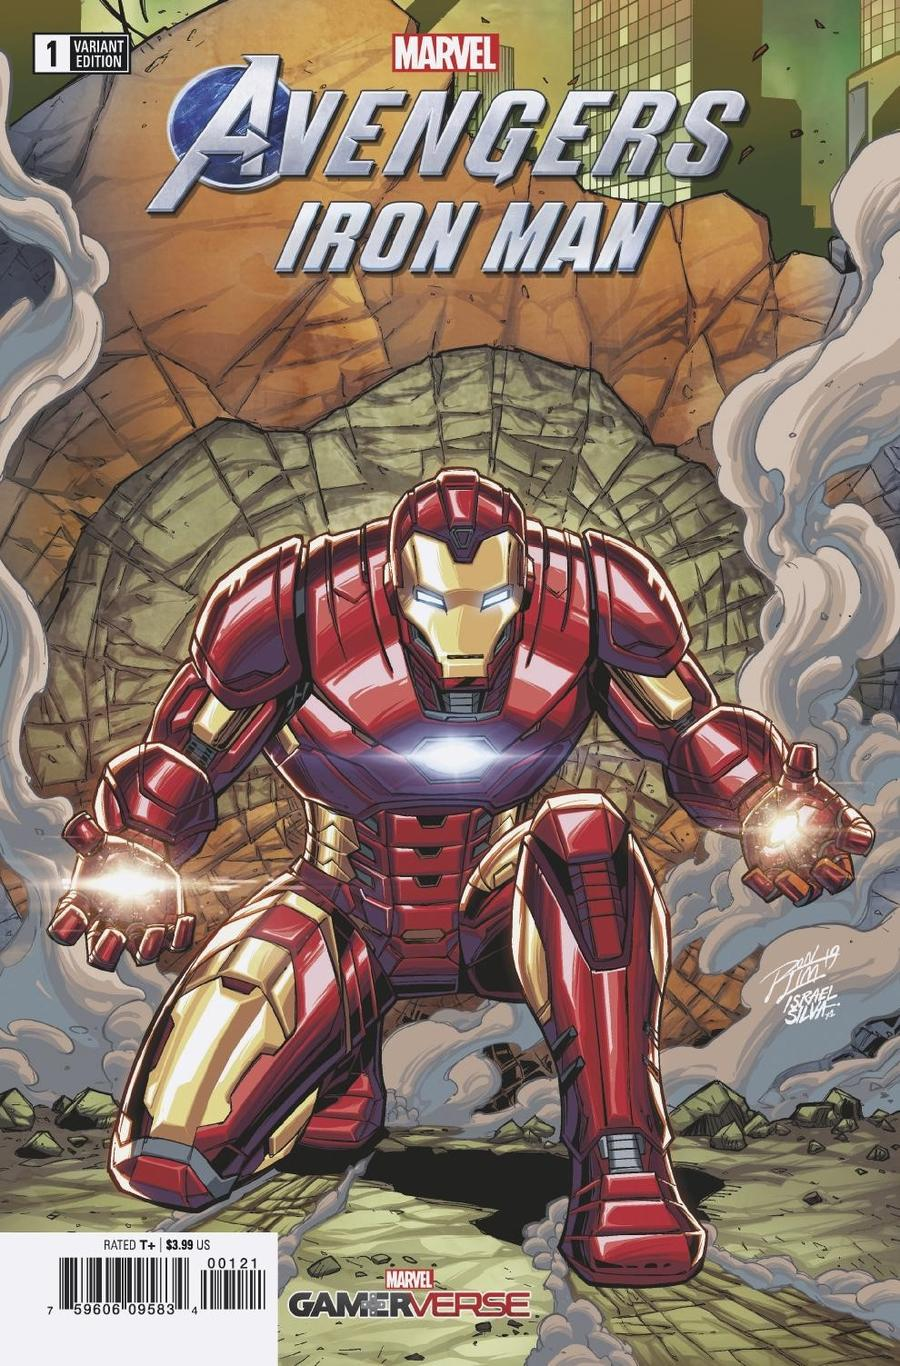 Marvels Avengers Iron Man #1 Cover B Variant Ron Lim Cover